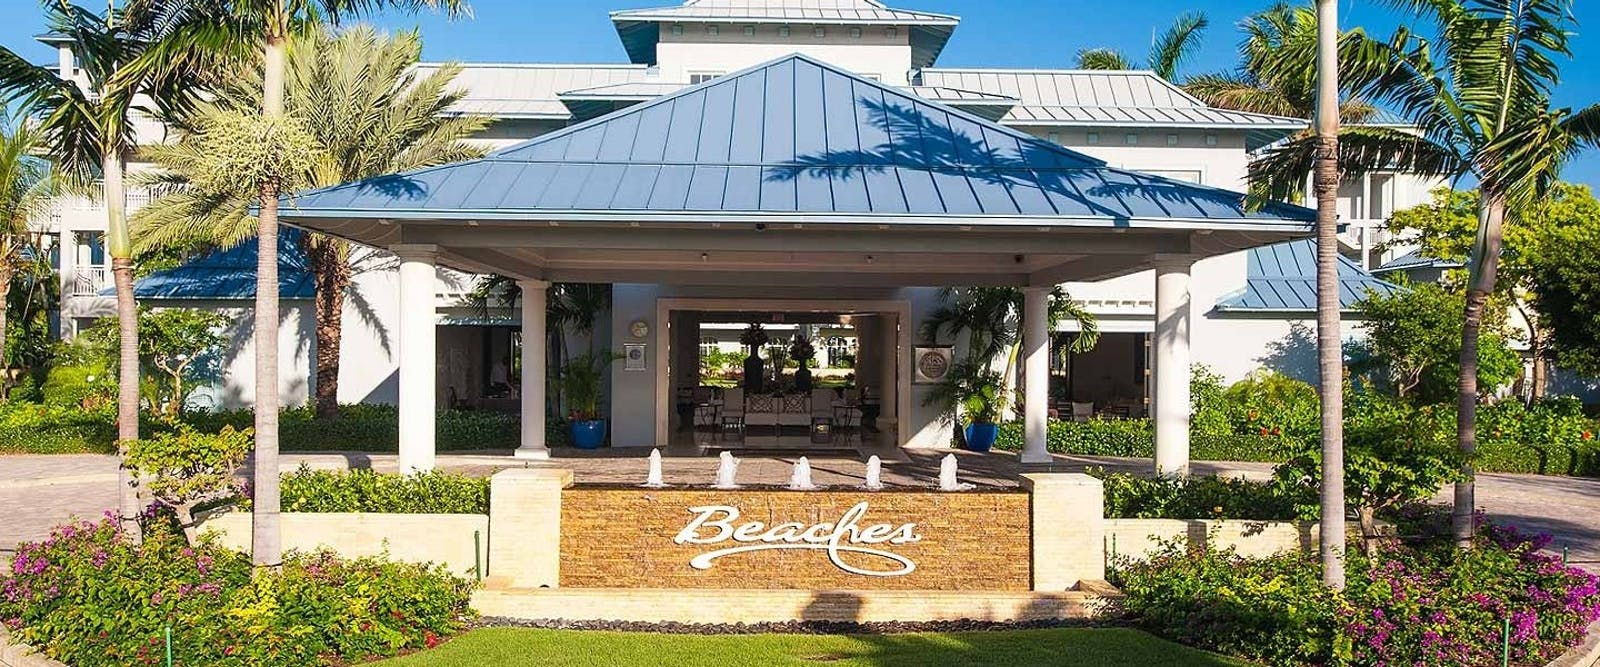 Entrance to Beaches Turks & Caicos Resort Villages & Spa